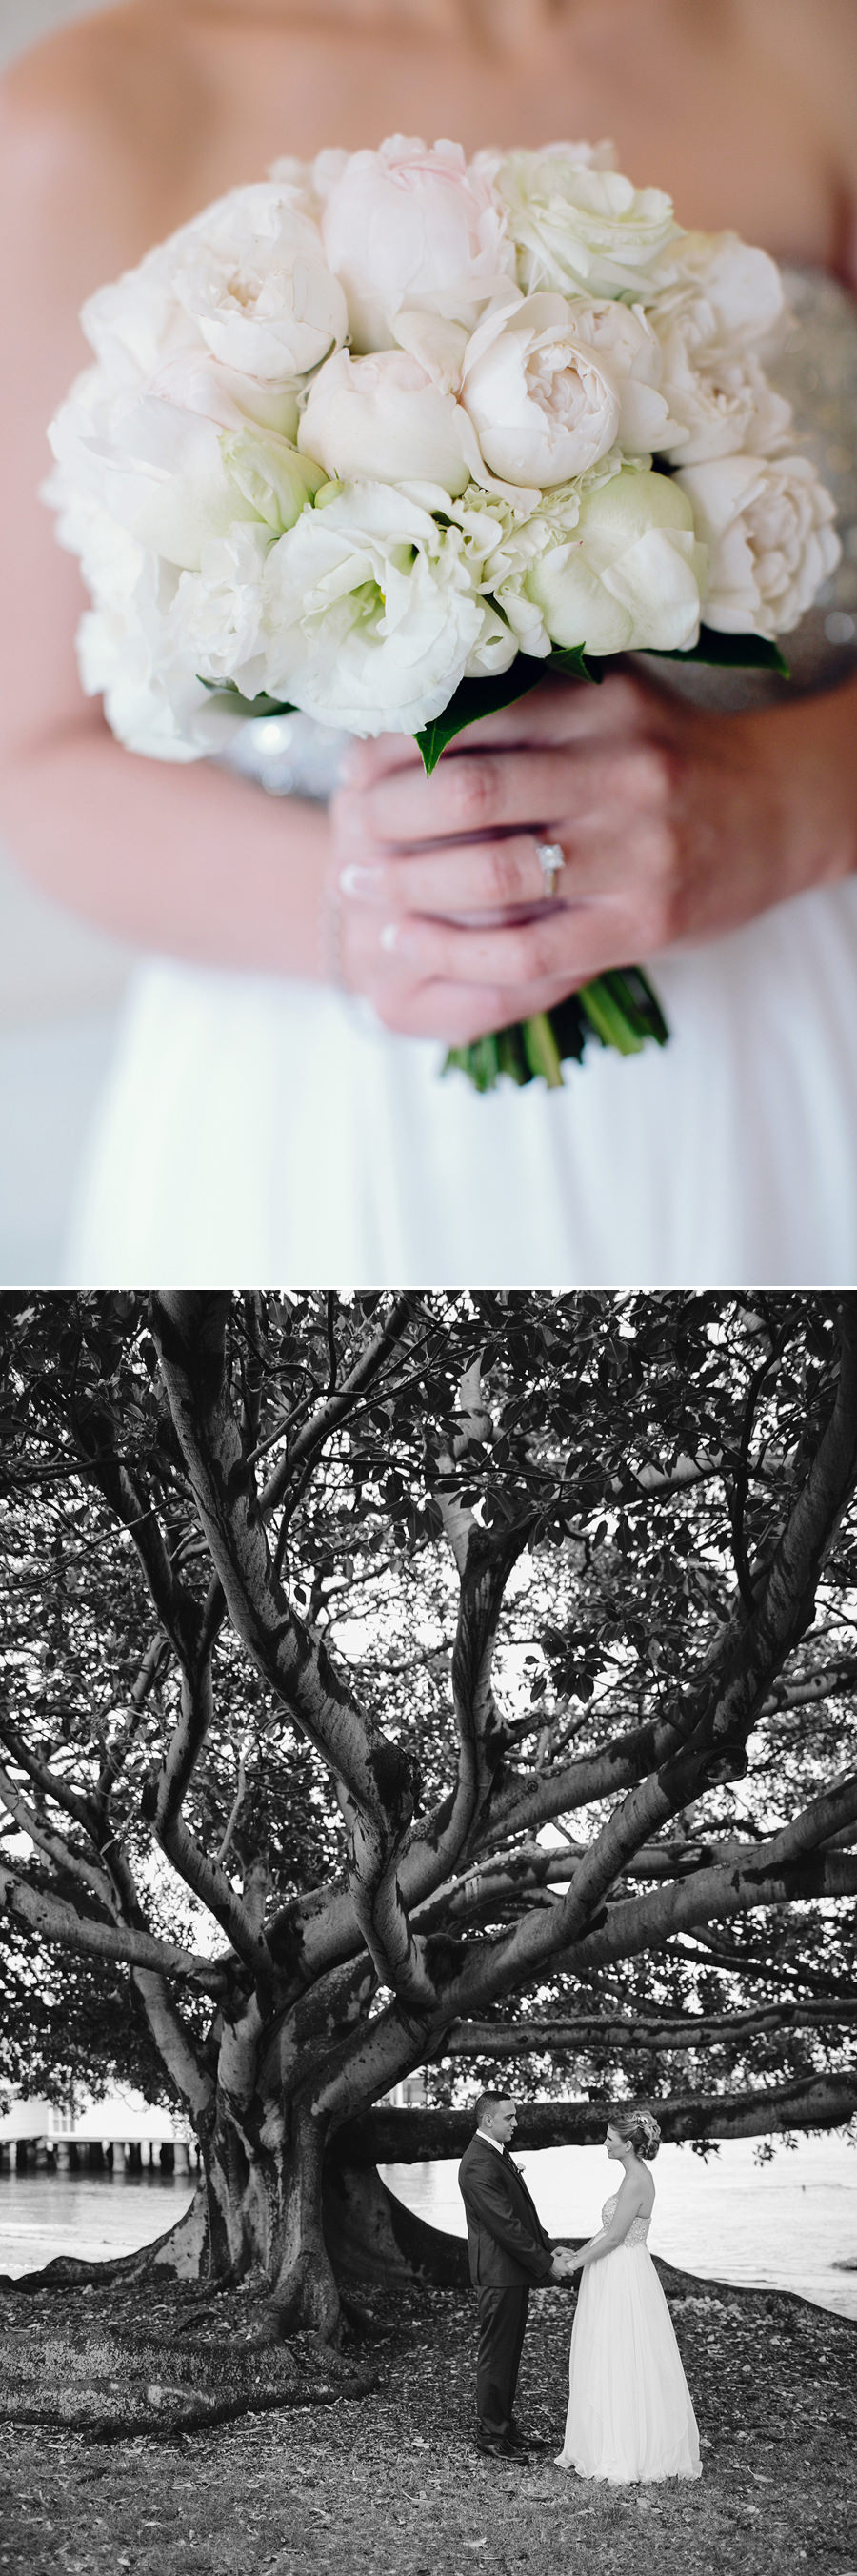 Elegant Wedding Photographer: Bride & Groom Portraits